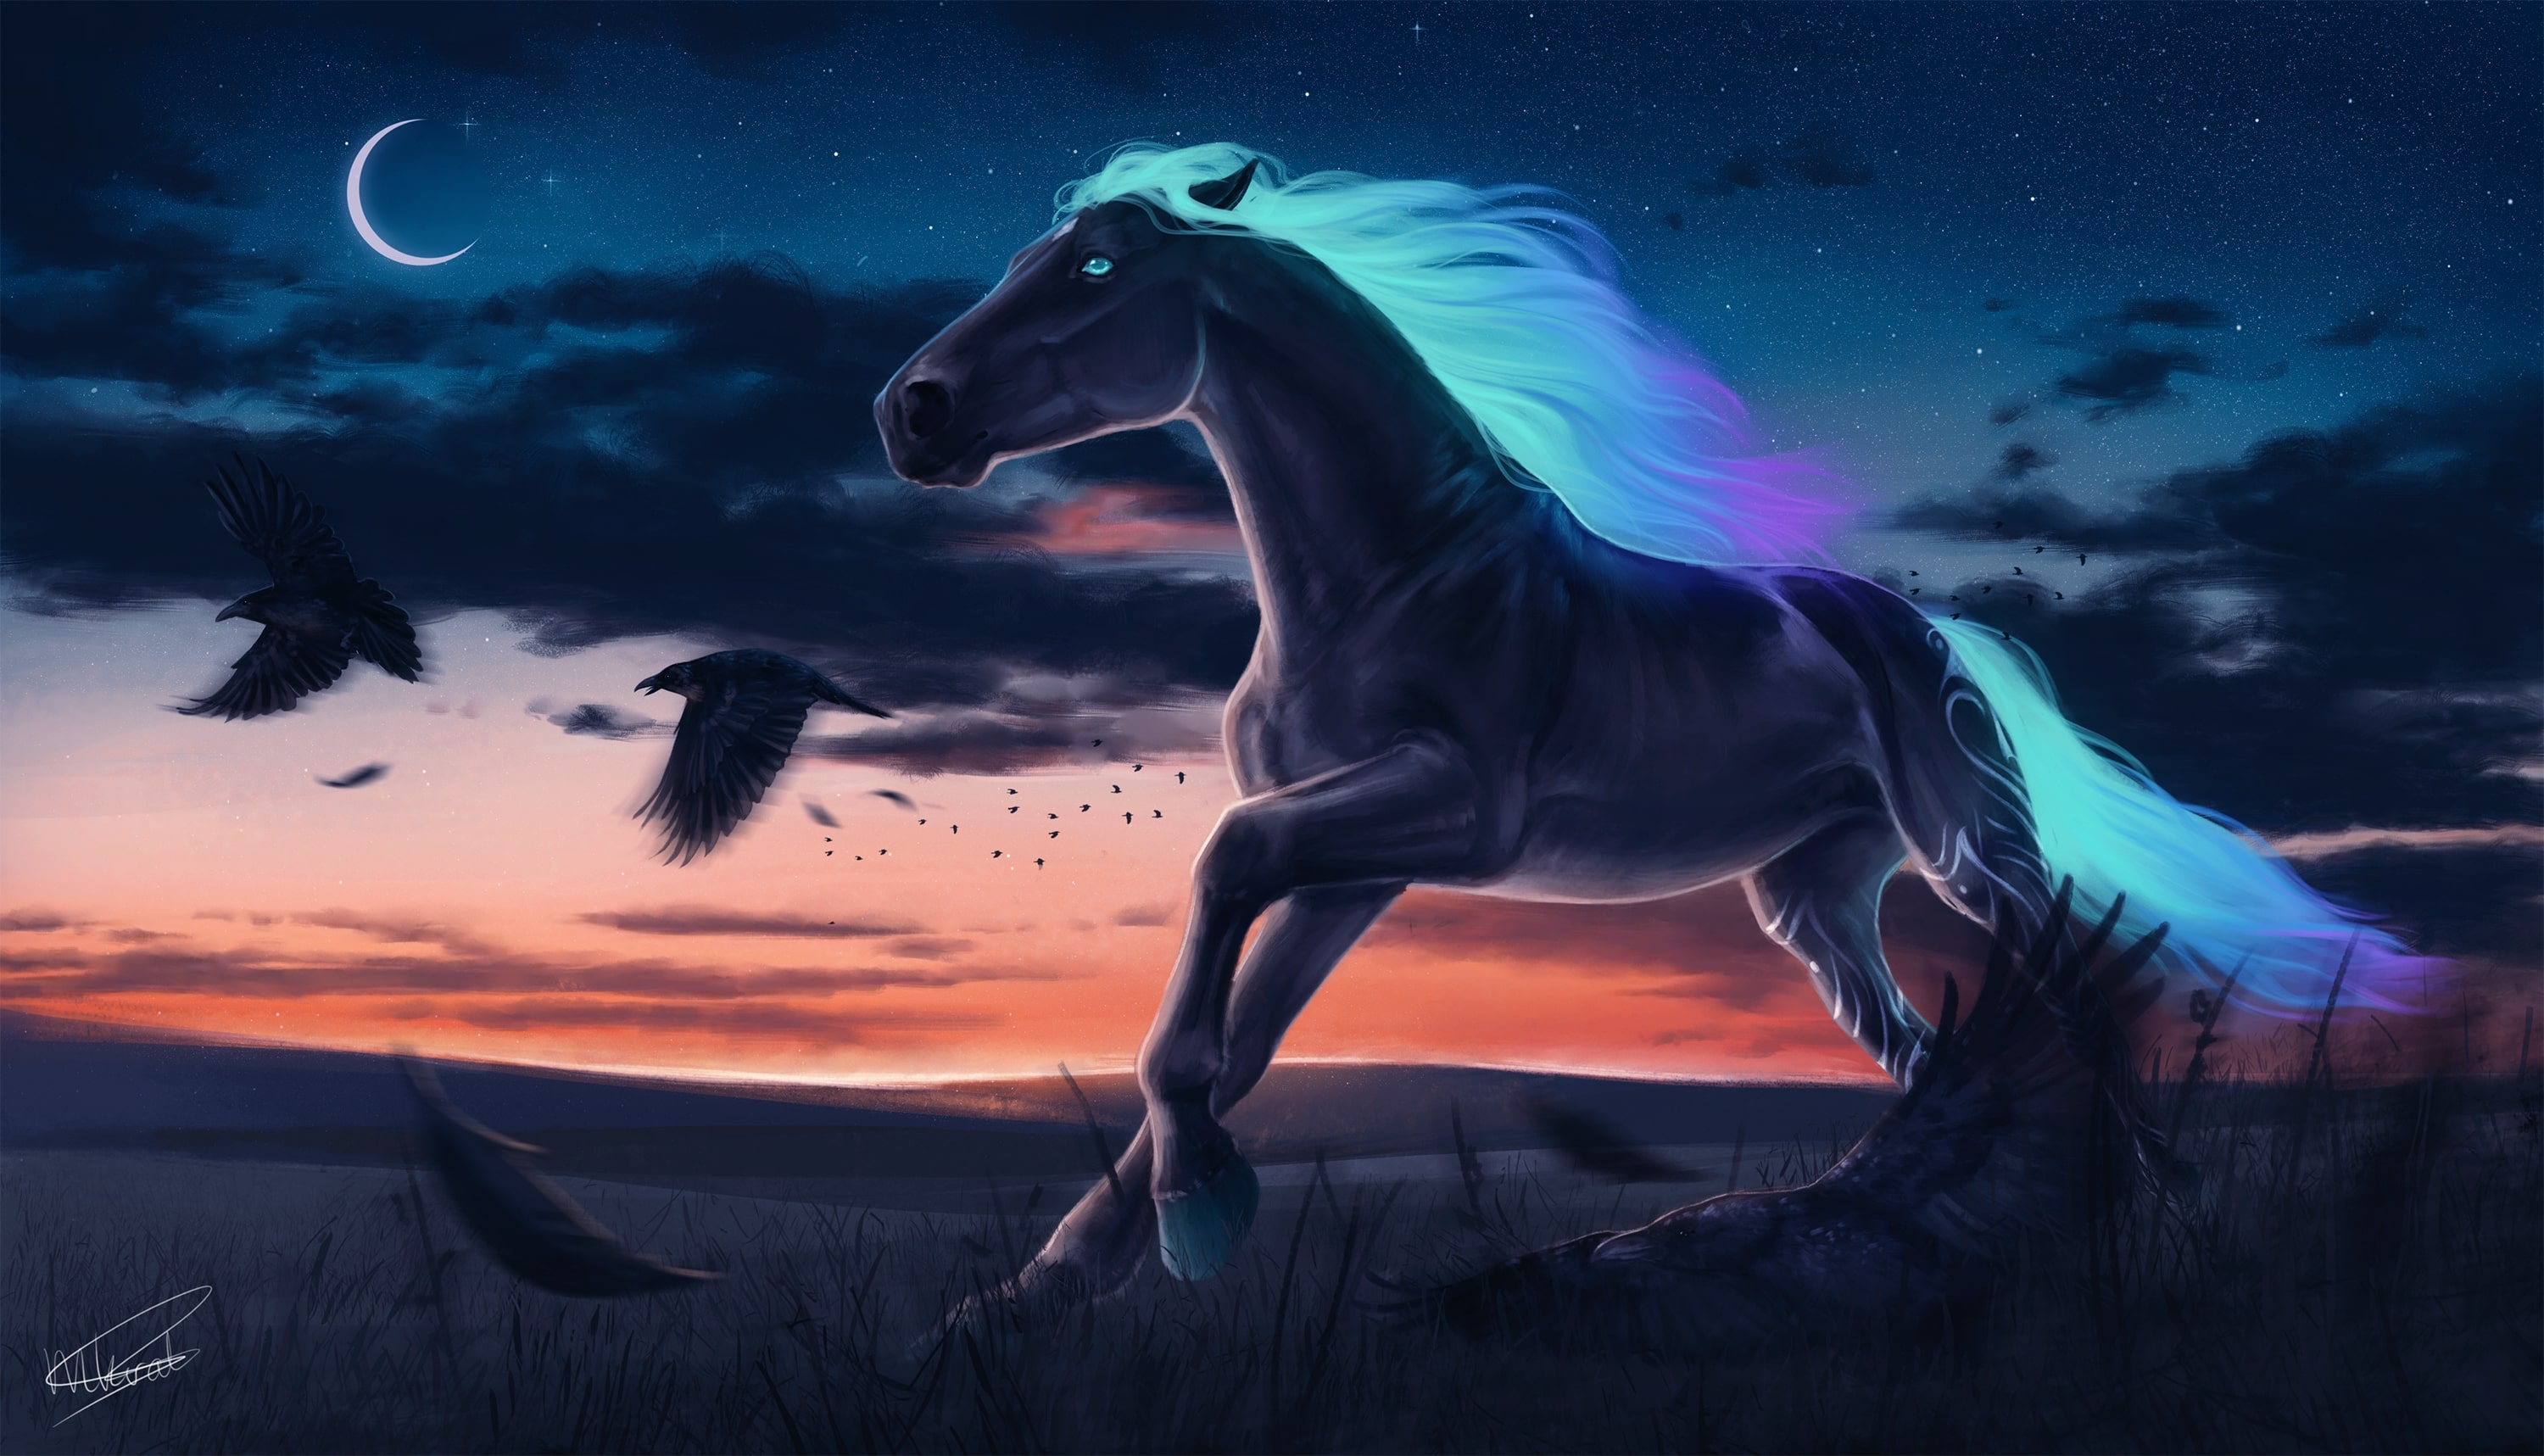 Fantasy Horse Wallpaper Posted By Samantha Cunningham